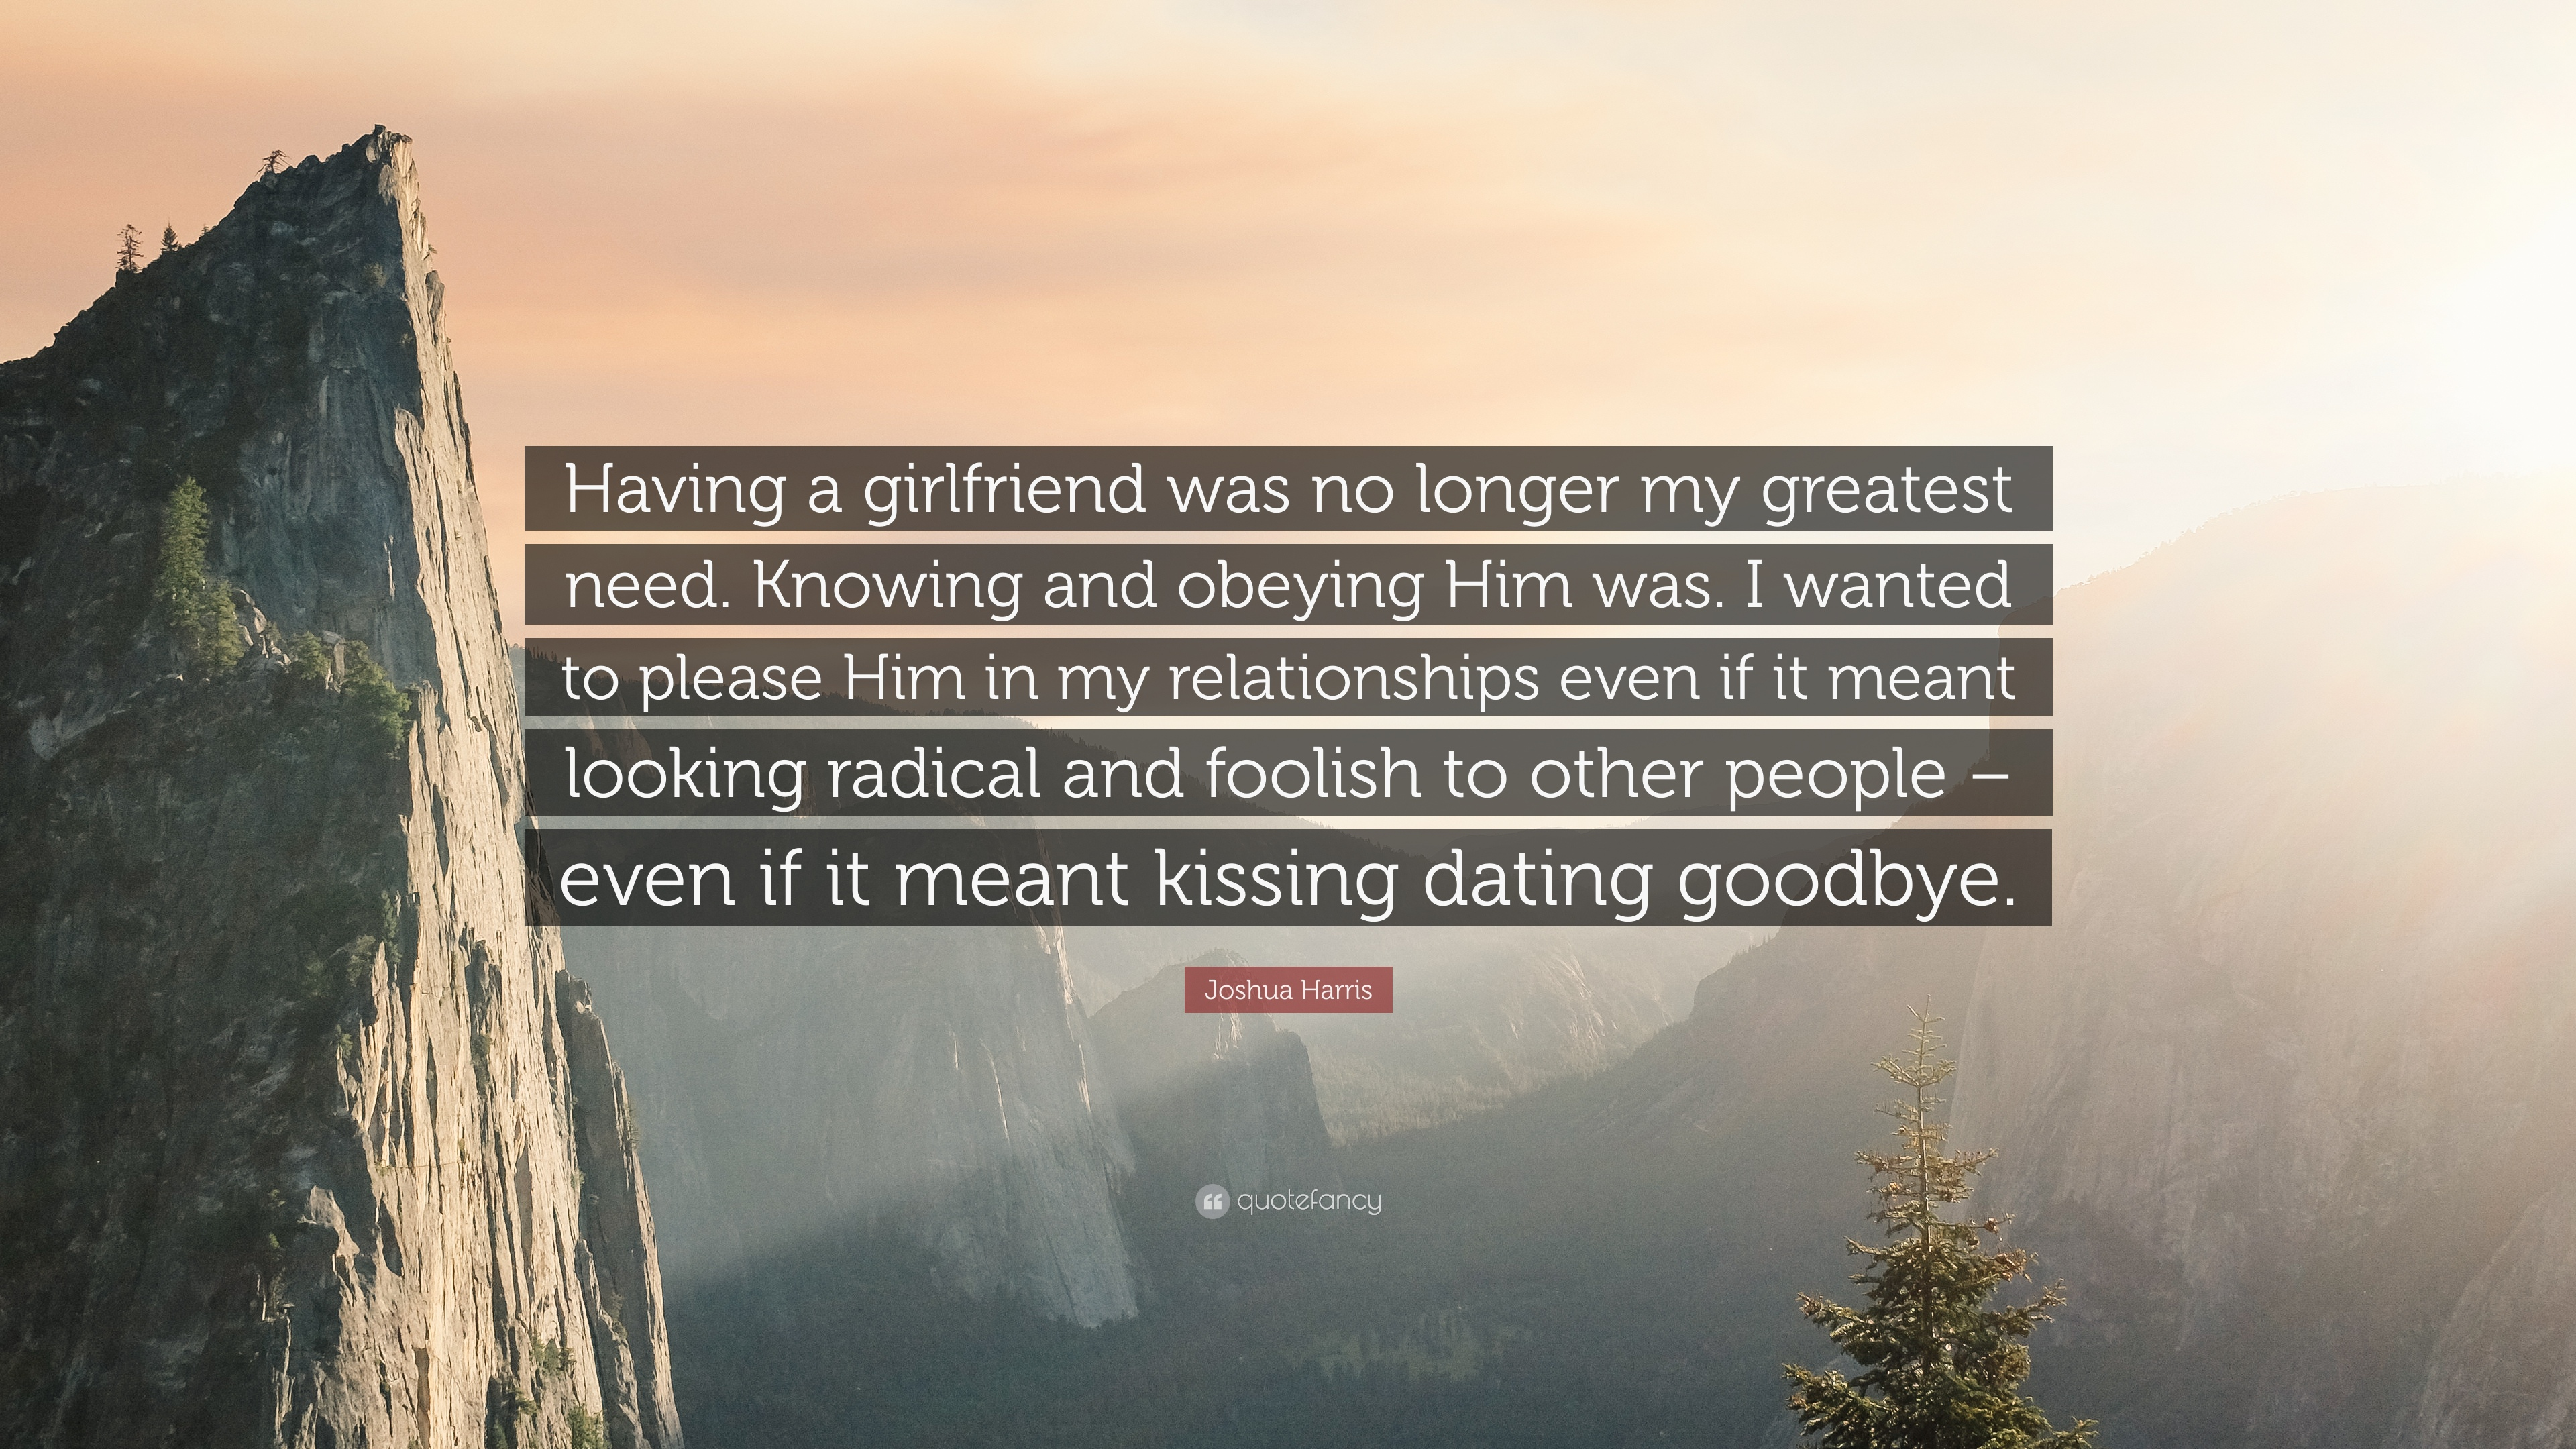 A kissed dating goodbye quotes